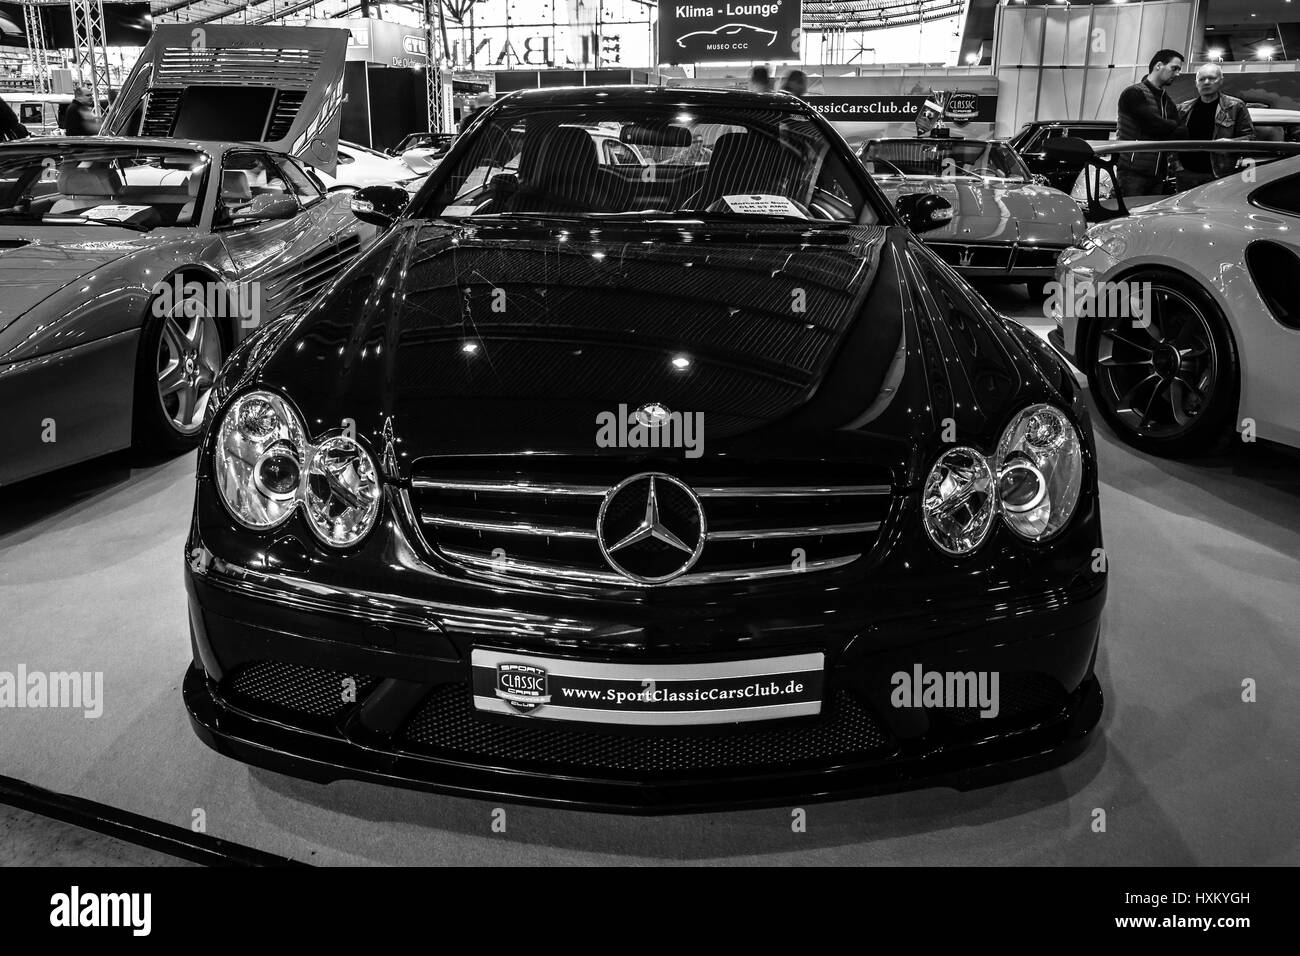 Mid-size Luxury Sports Car Mercedes-Benz CLK63 AMG Black